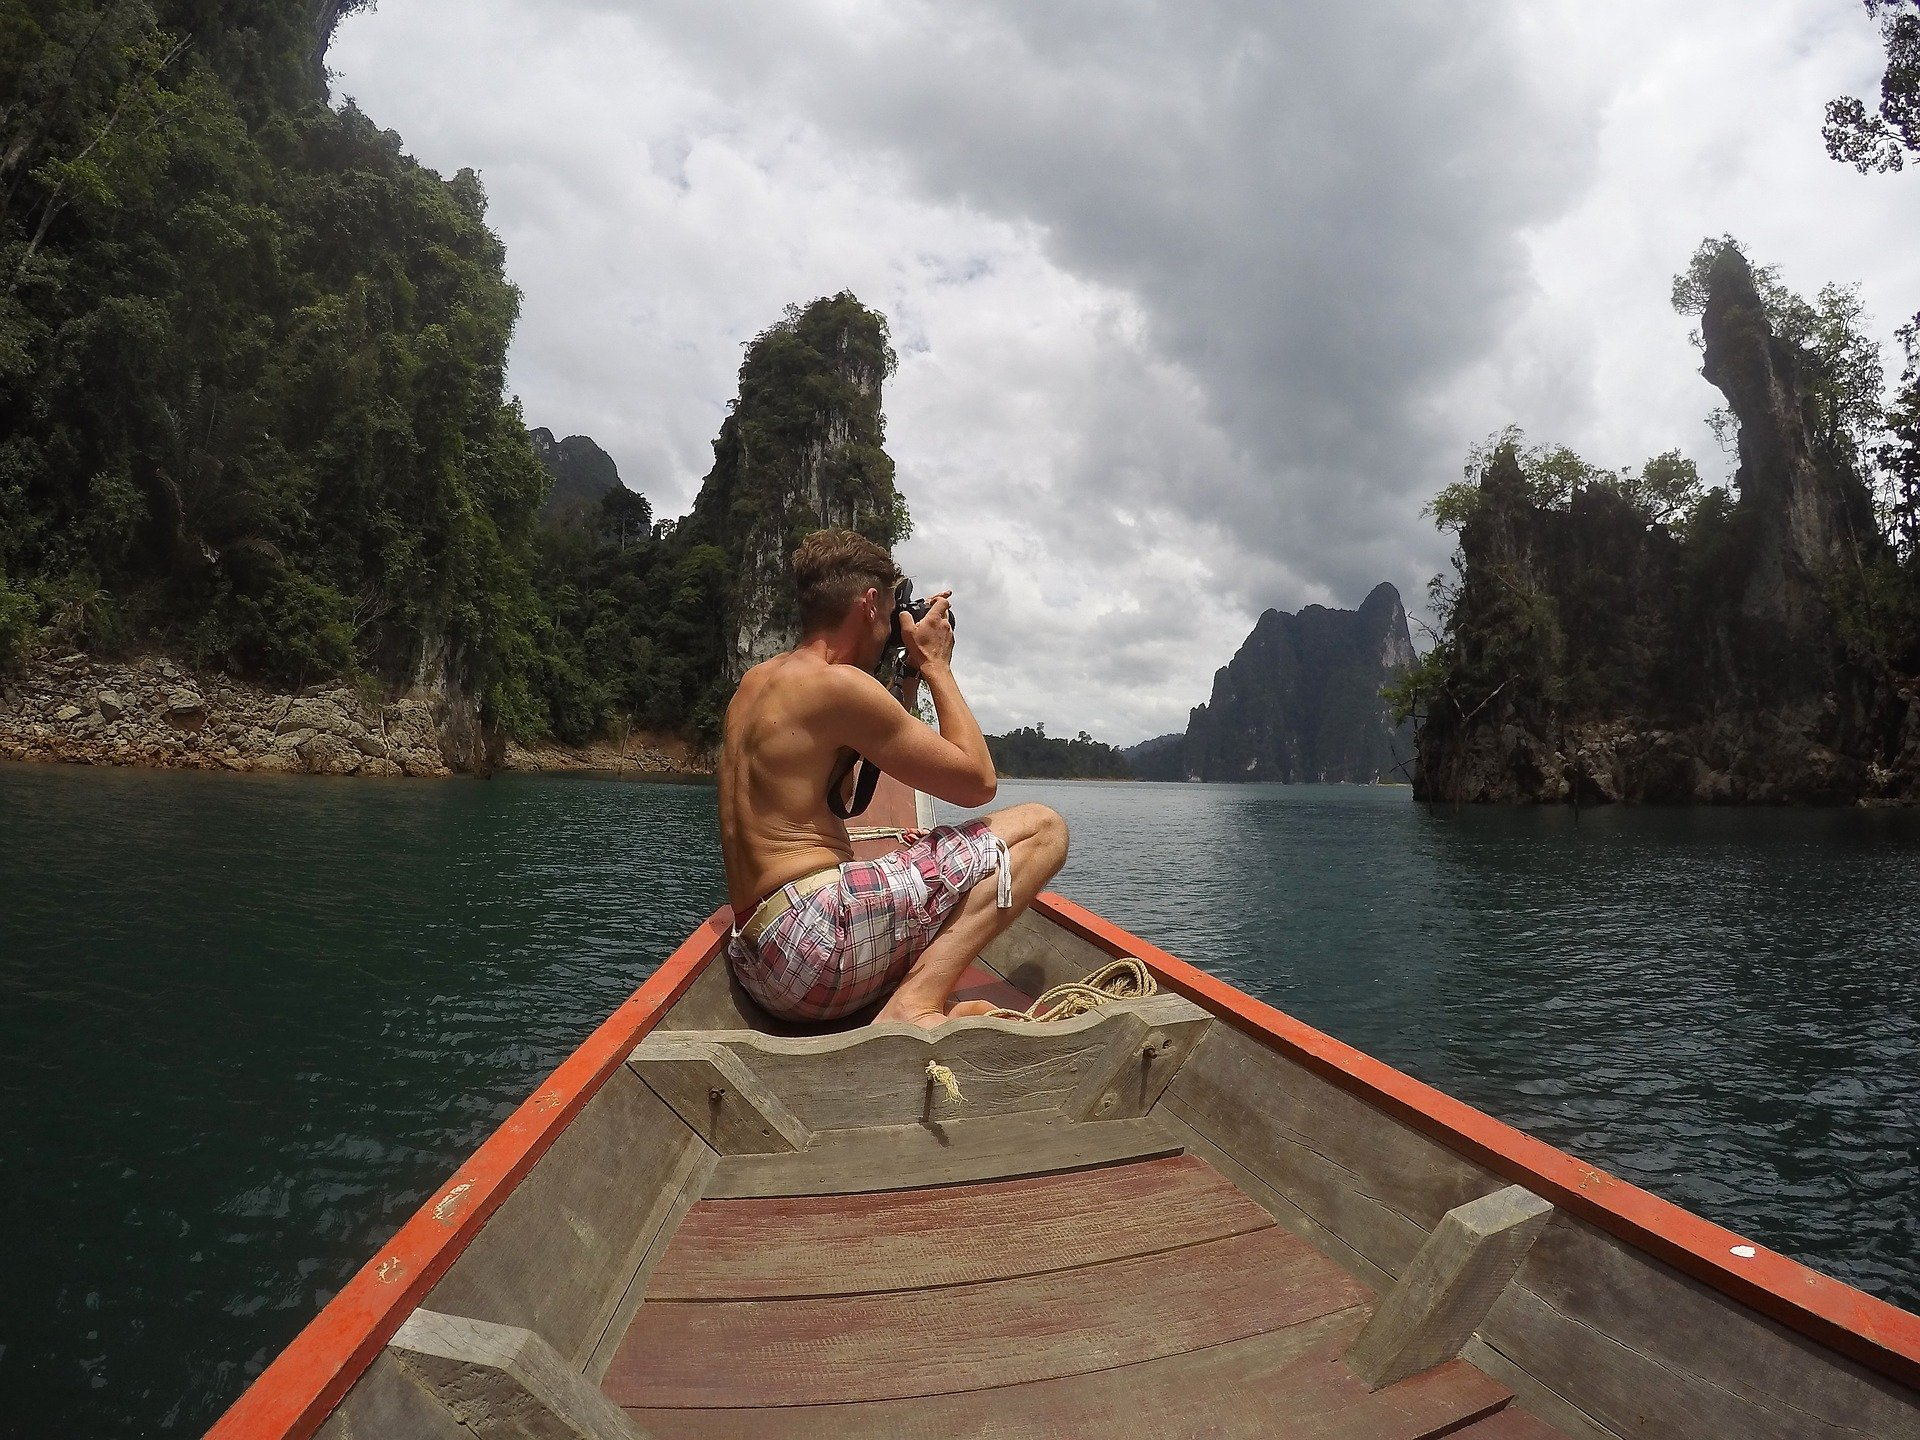 Boat tour of the lake in Khao Sok National Park